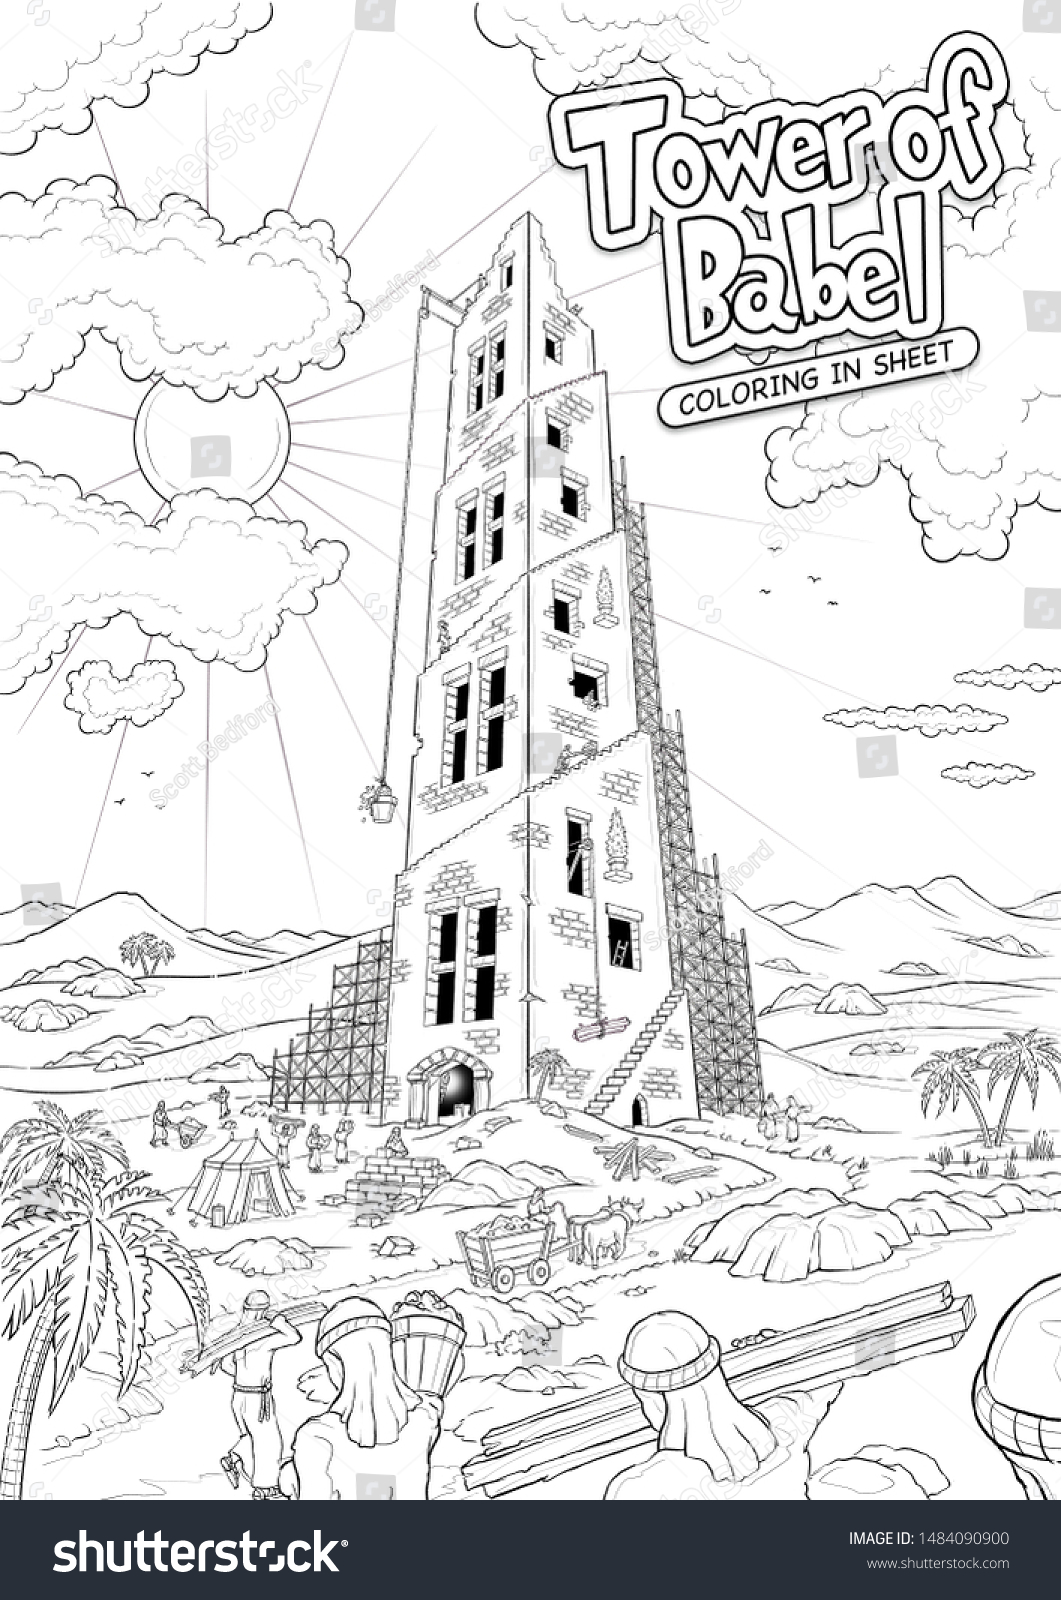 tower babel bible coloring sheet stock illustration of photo in thanksgiving figuring coloring pages Tower Of Babel Coloring Page